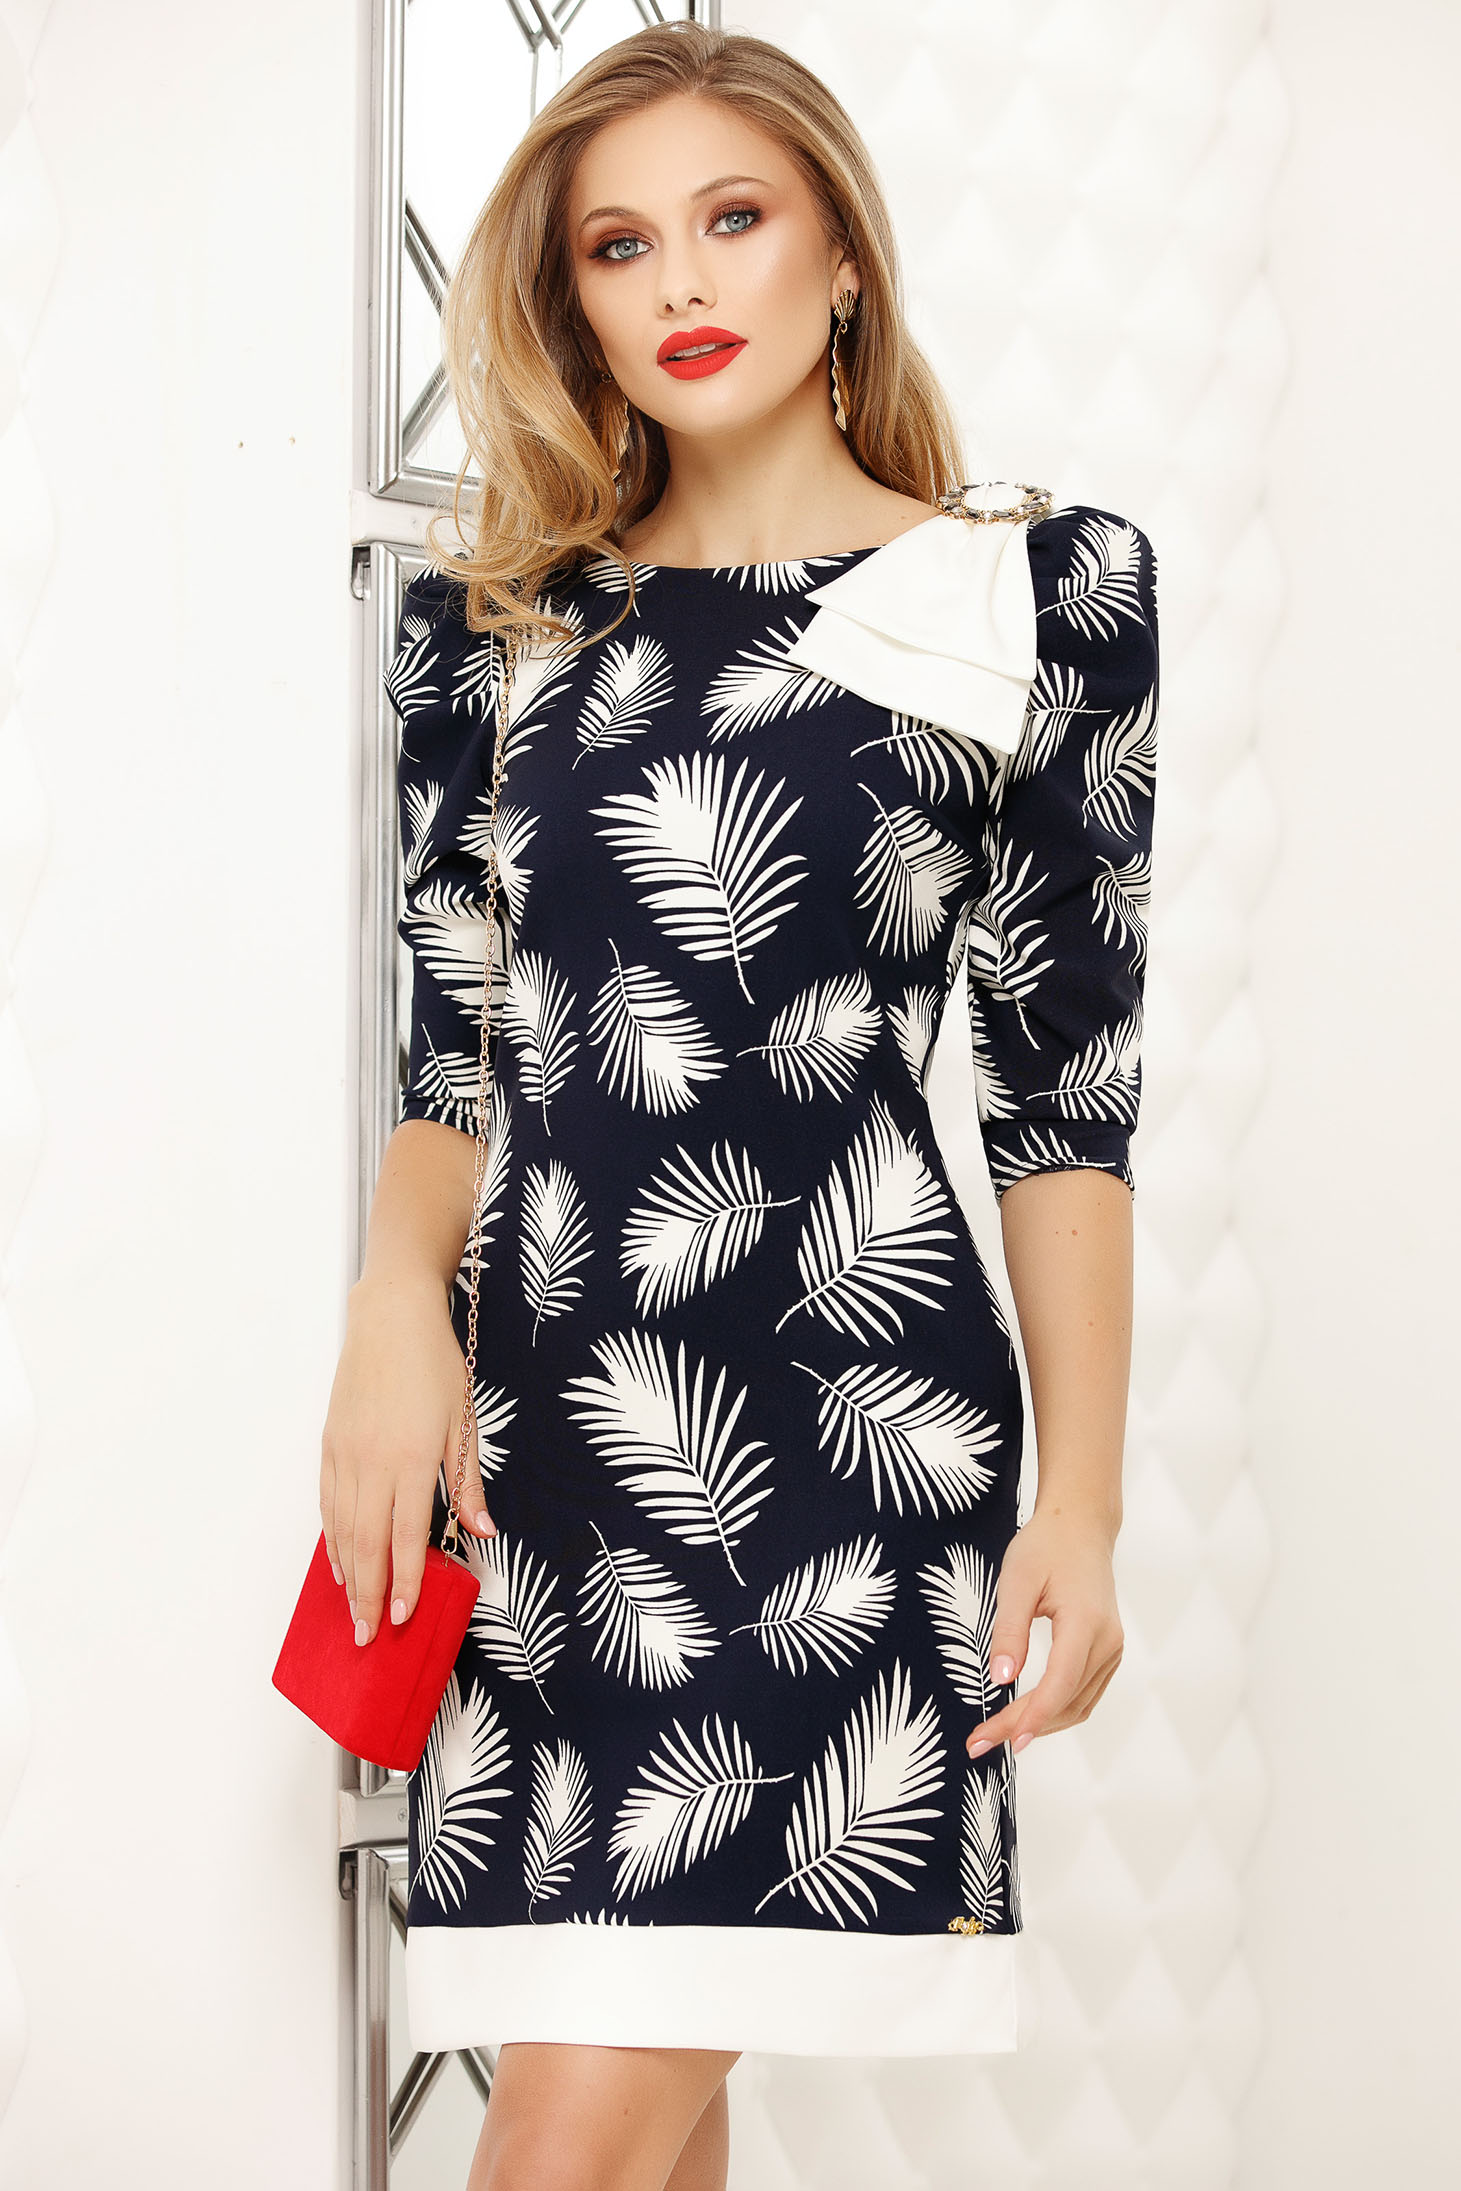 Dress darkblue office short cut a-line with floral prints accessorized with breastpin